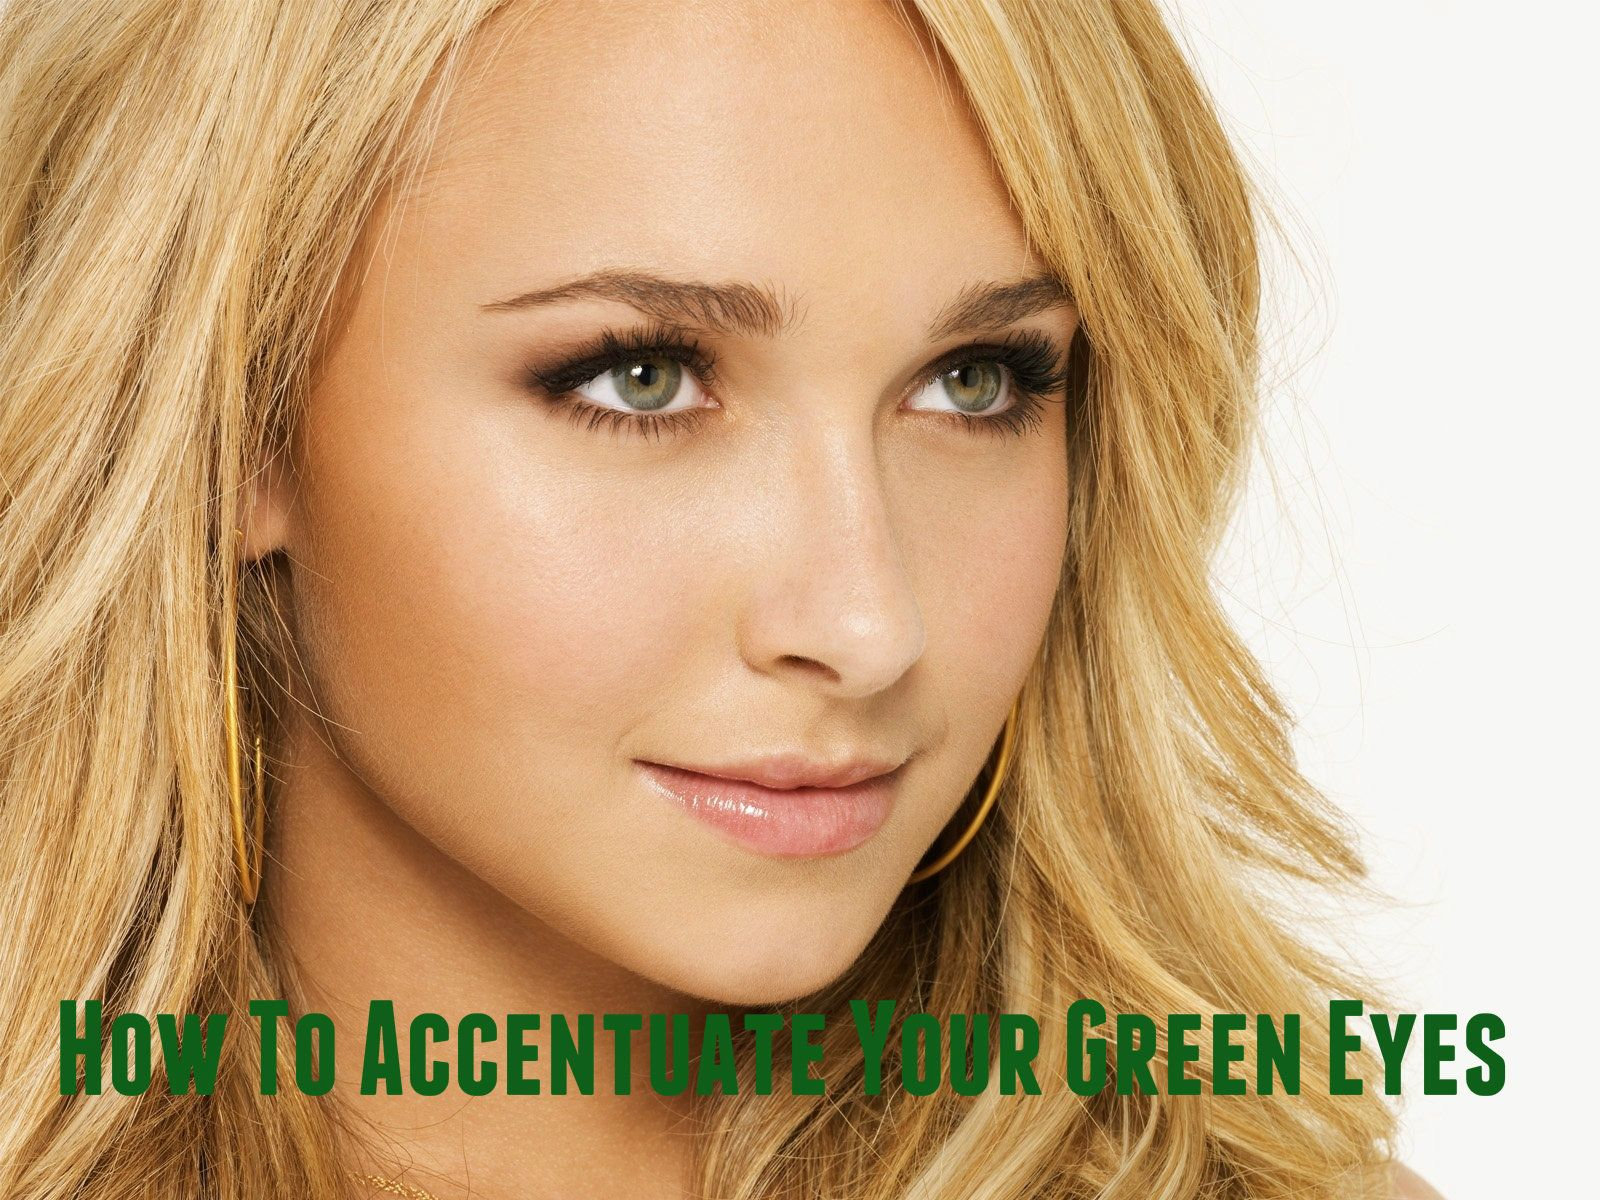 Hair Color For Green Eyes Pale Skin